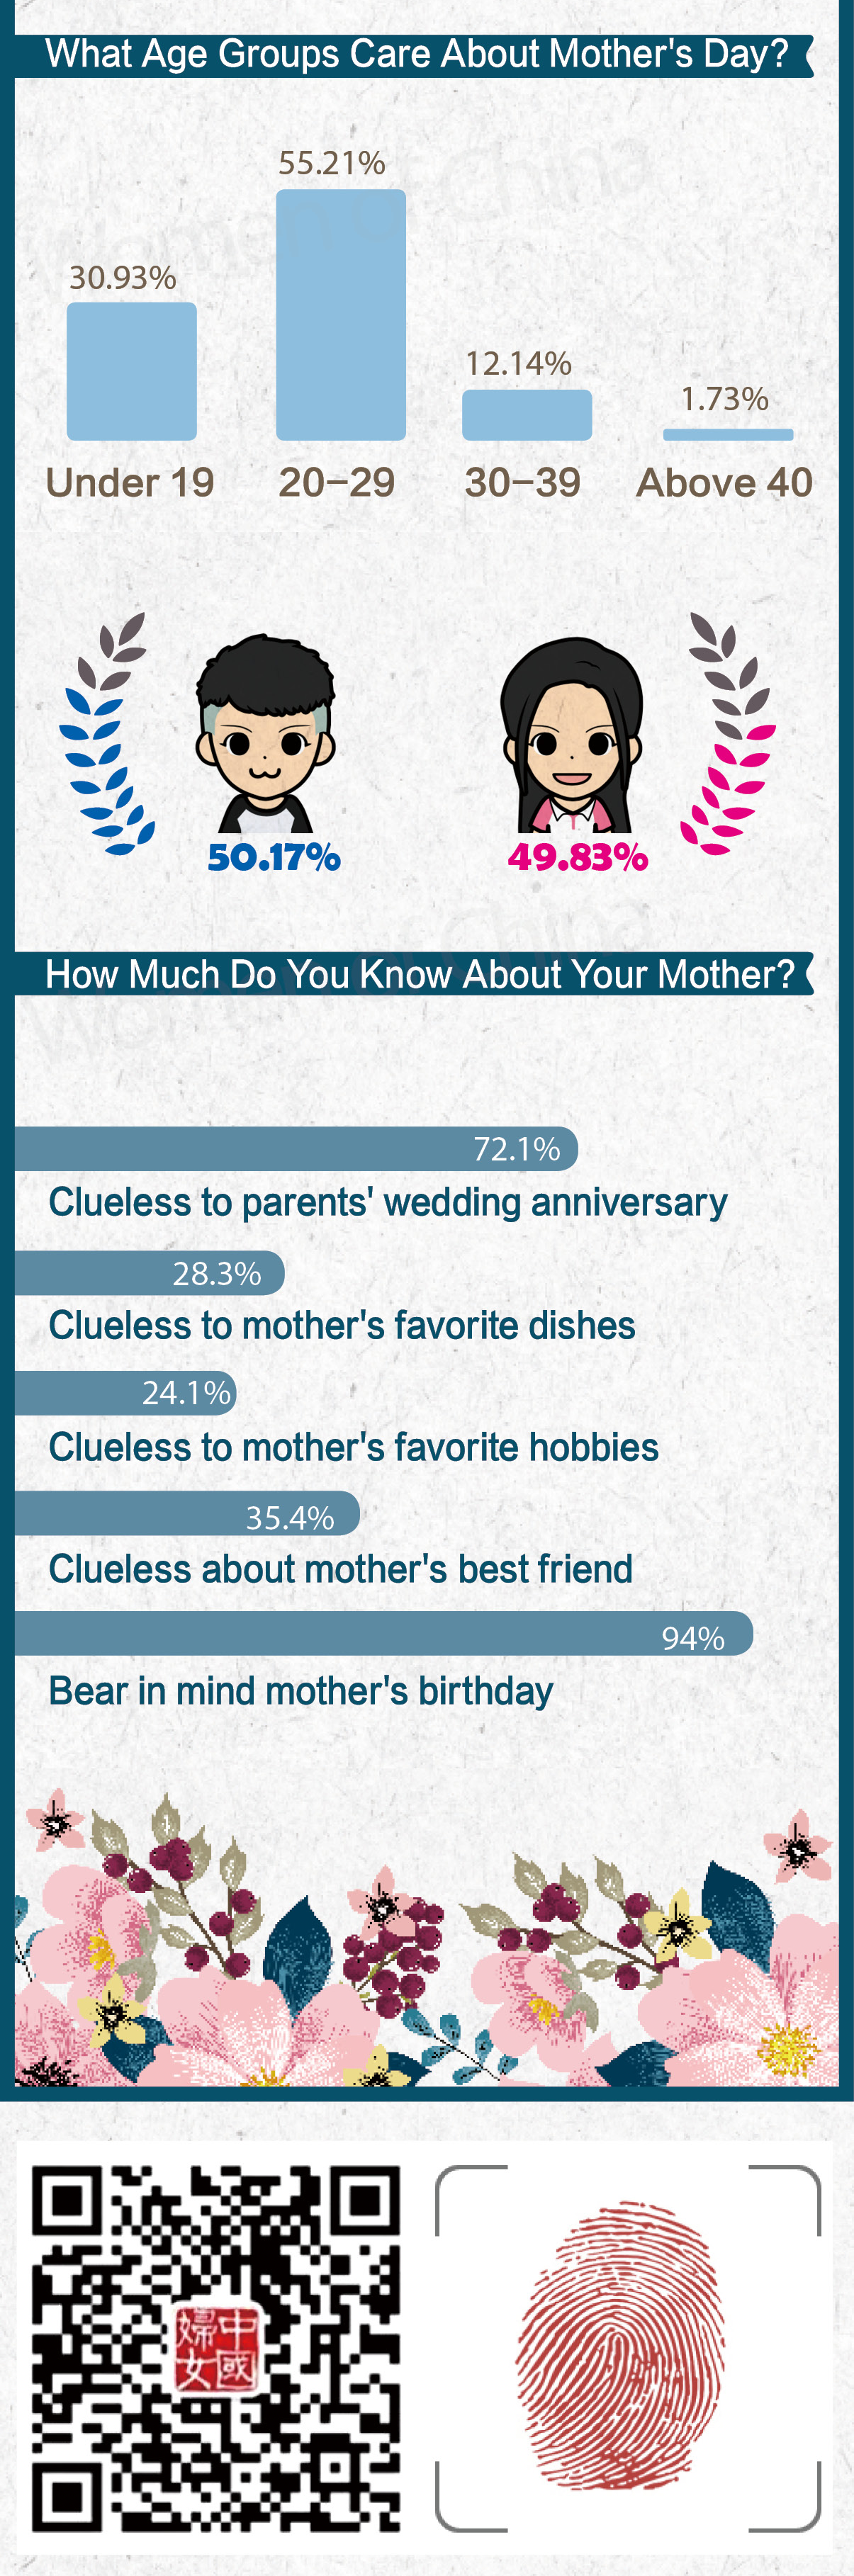 How Much do You Know About Your Mother?